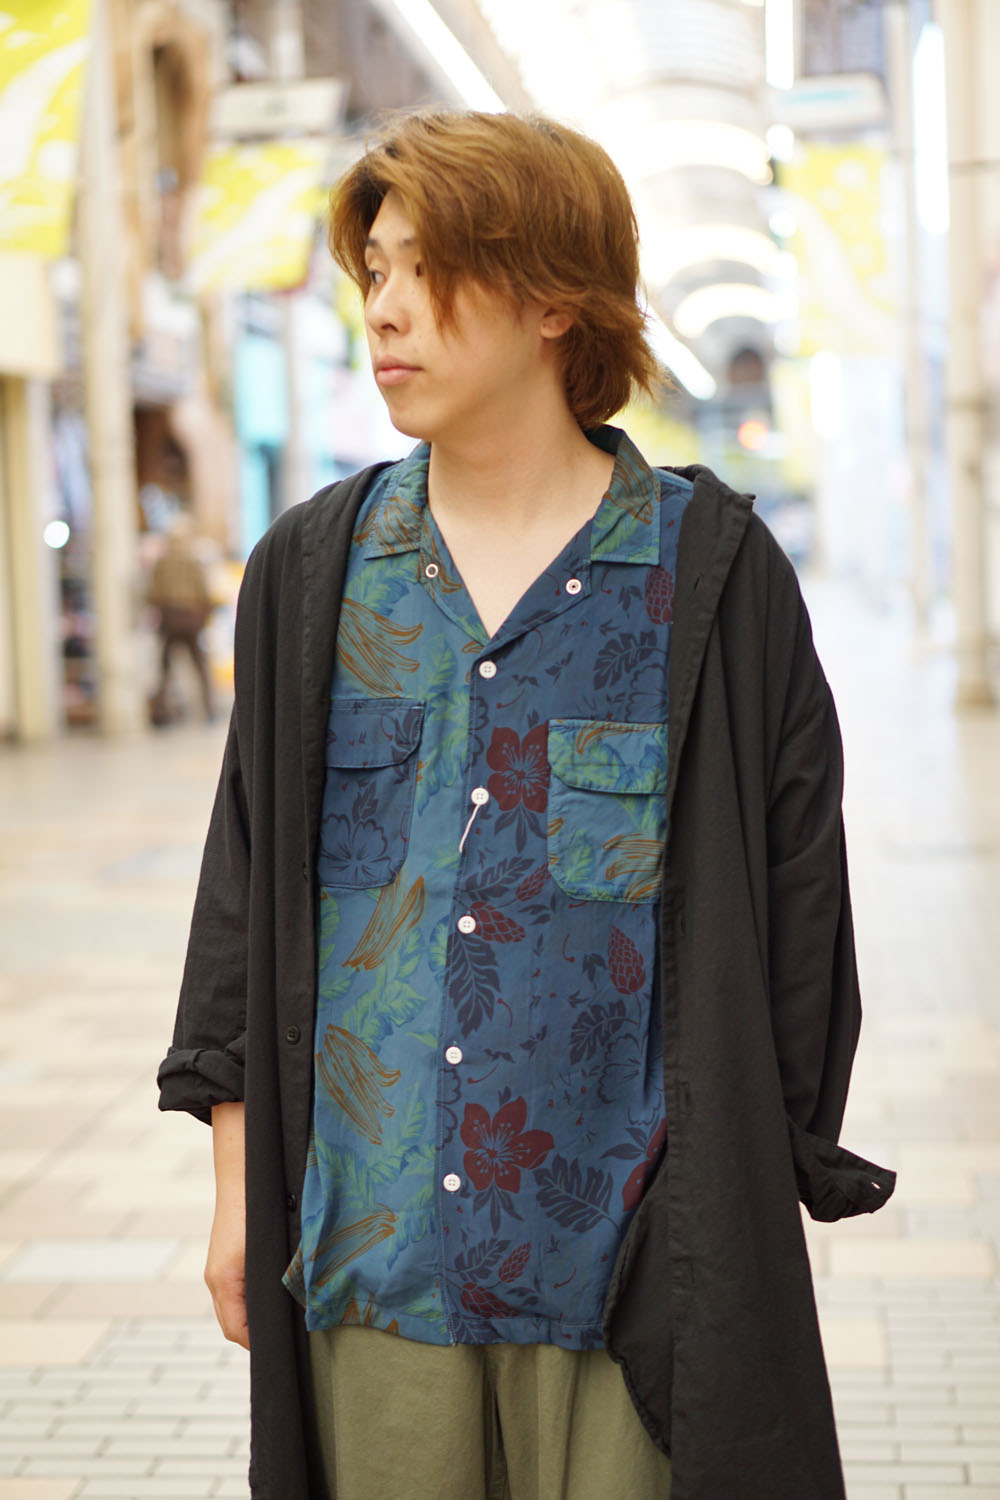 THE NORT FACE PURPLE LABEL / Styling